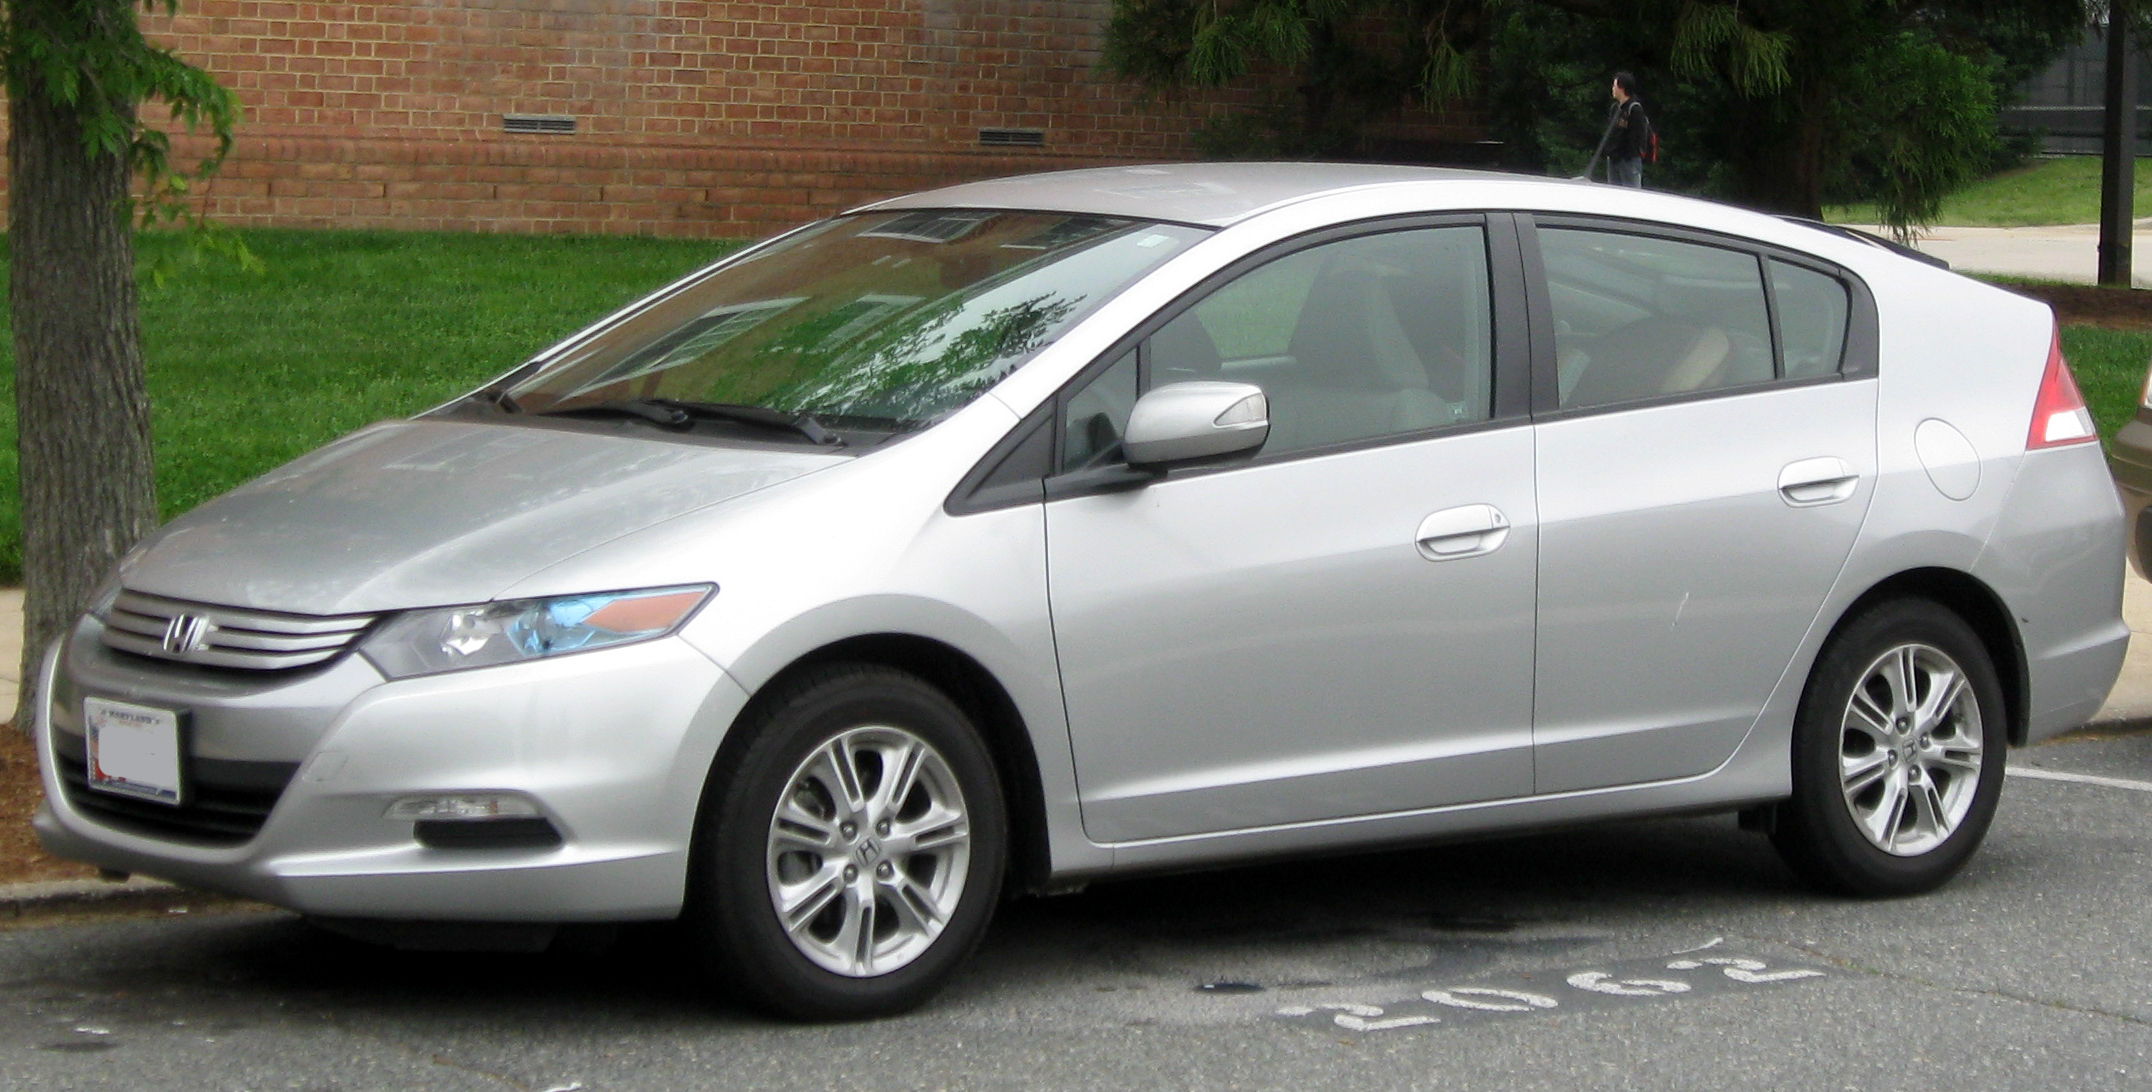 Honda Insight 2014 Exterior Side View